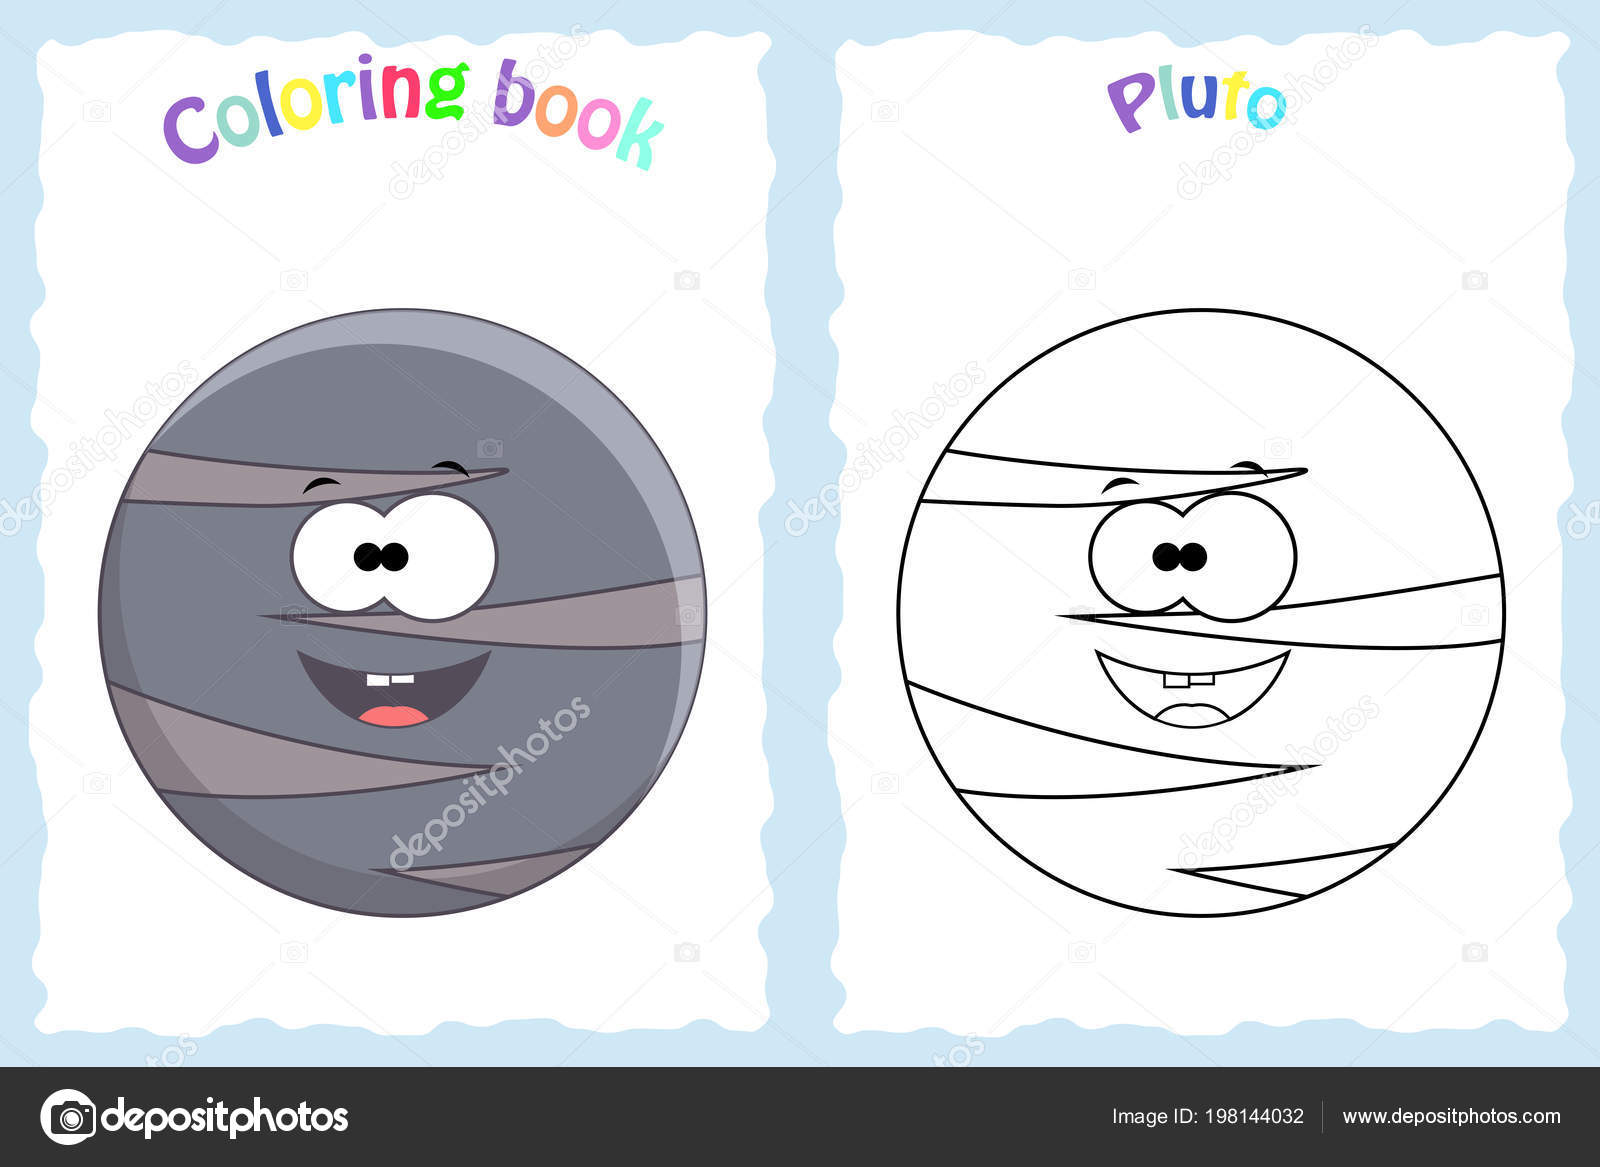 Coloring Book Page For Preschool Children With Colorful Pluto Pl